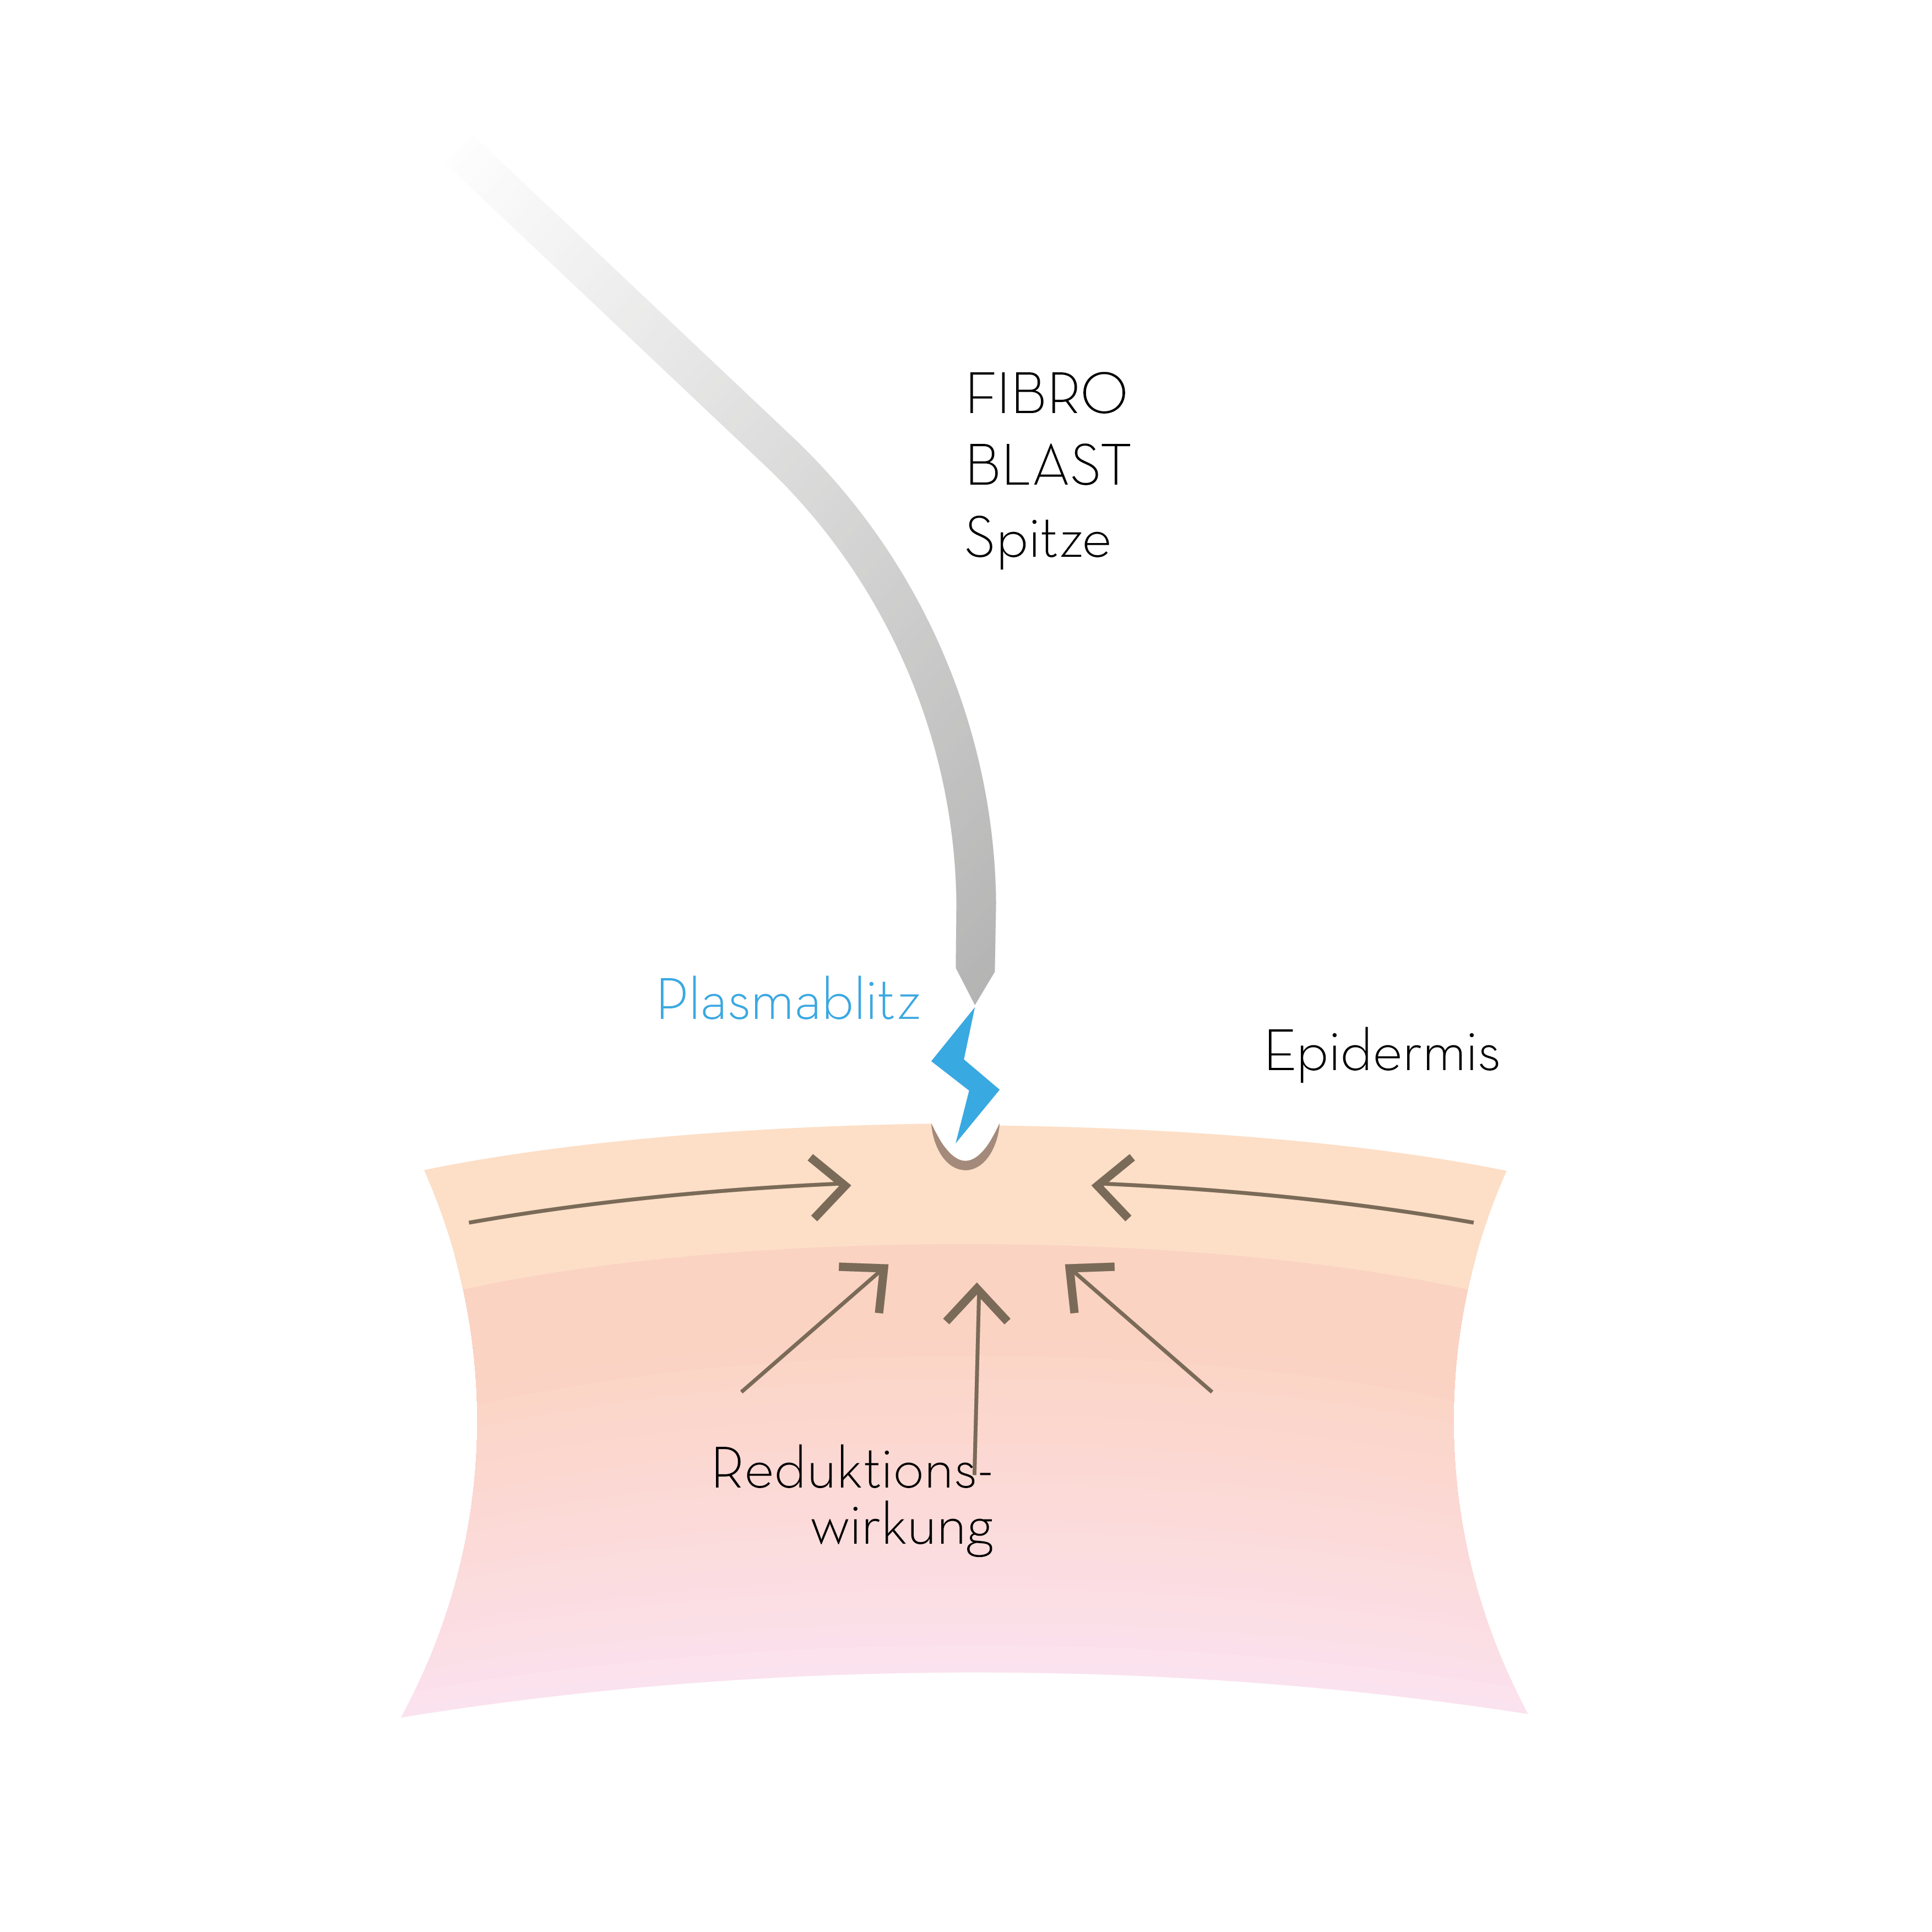 PB FIBROBLAST-Illustration 01